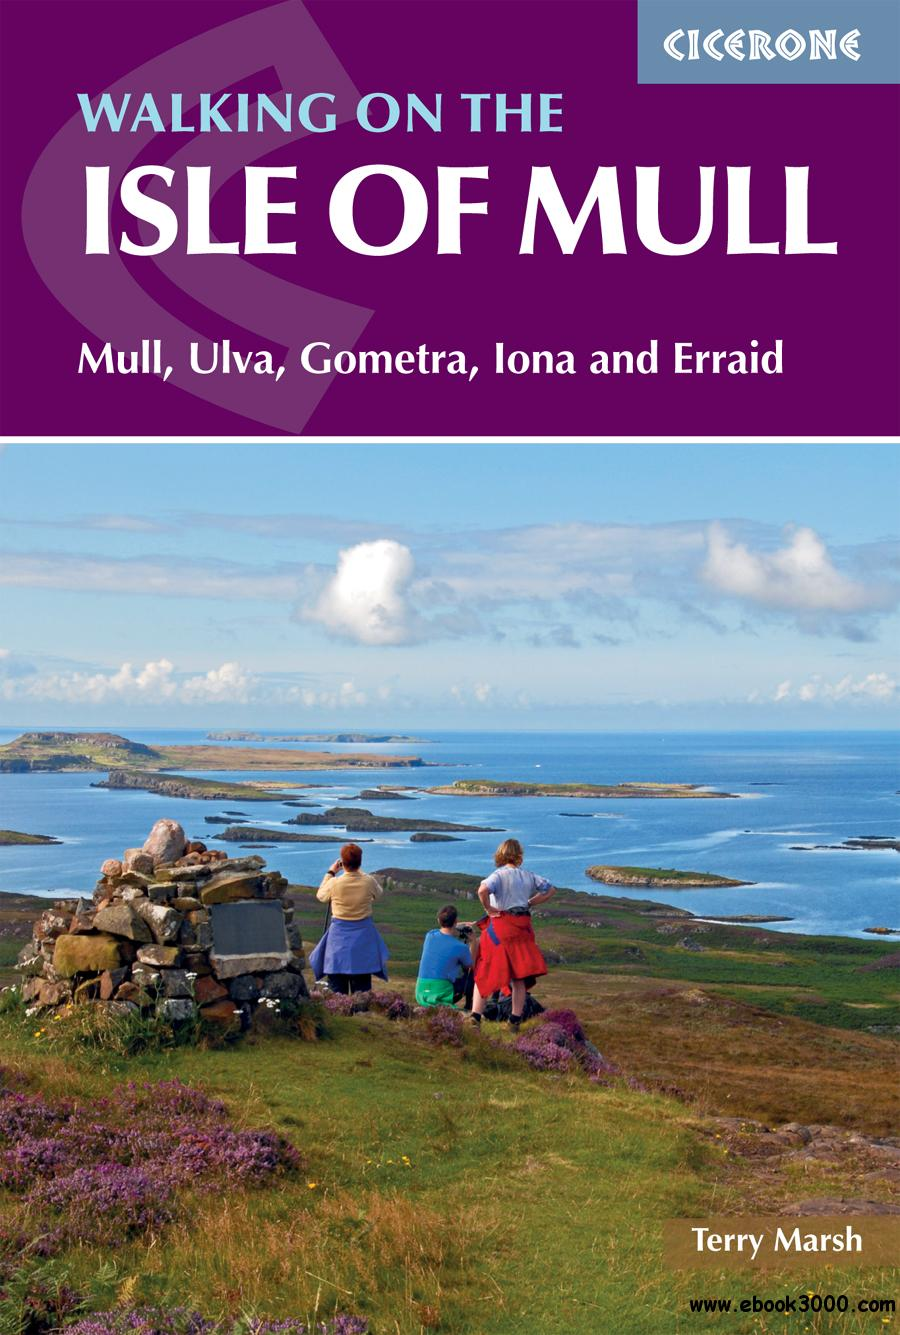 The Isle of Mull: Mull, Ulva, Gometra, Iona and Erraid (British Mountains), 2nd Edition